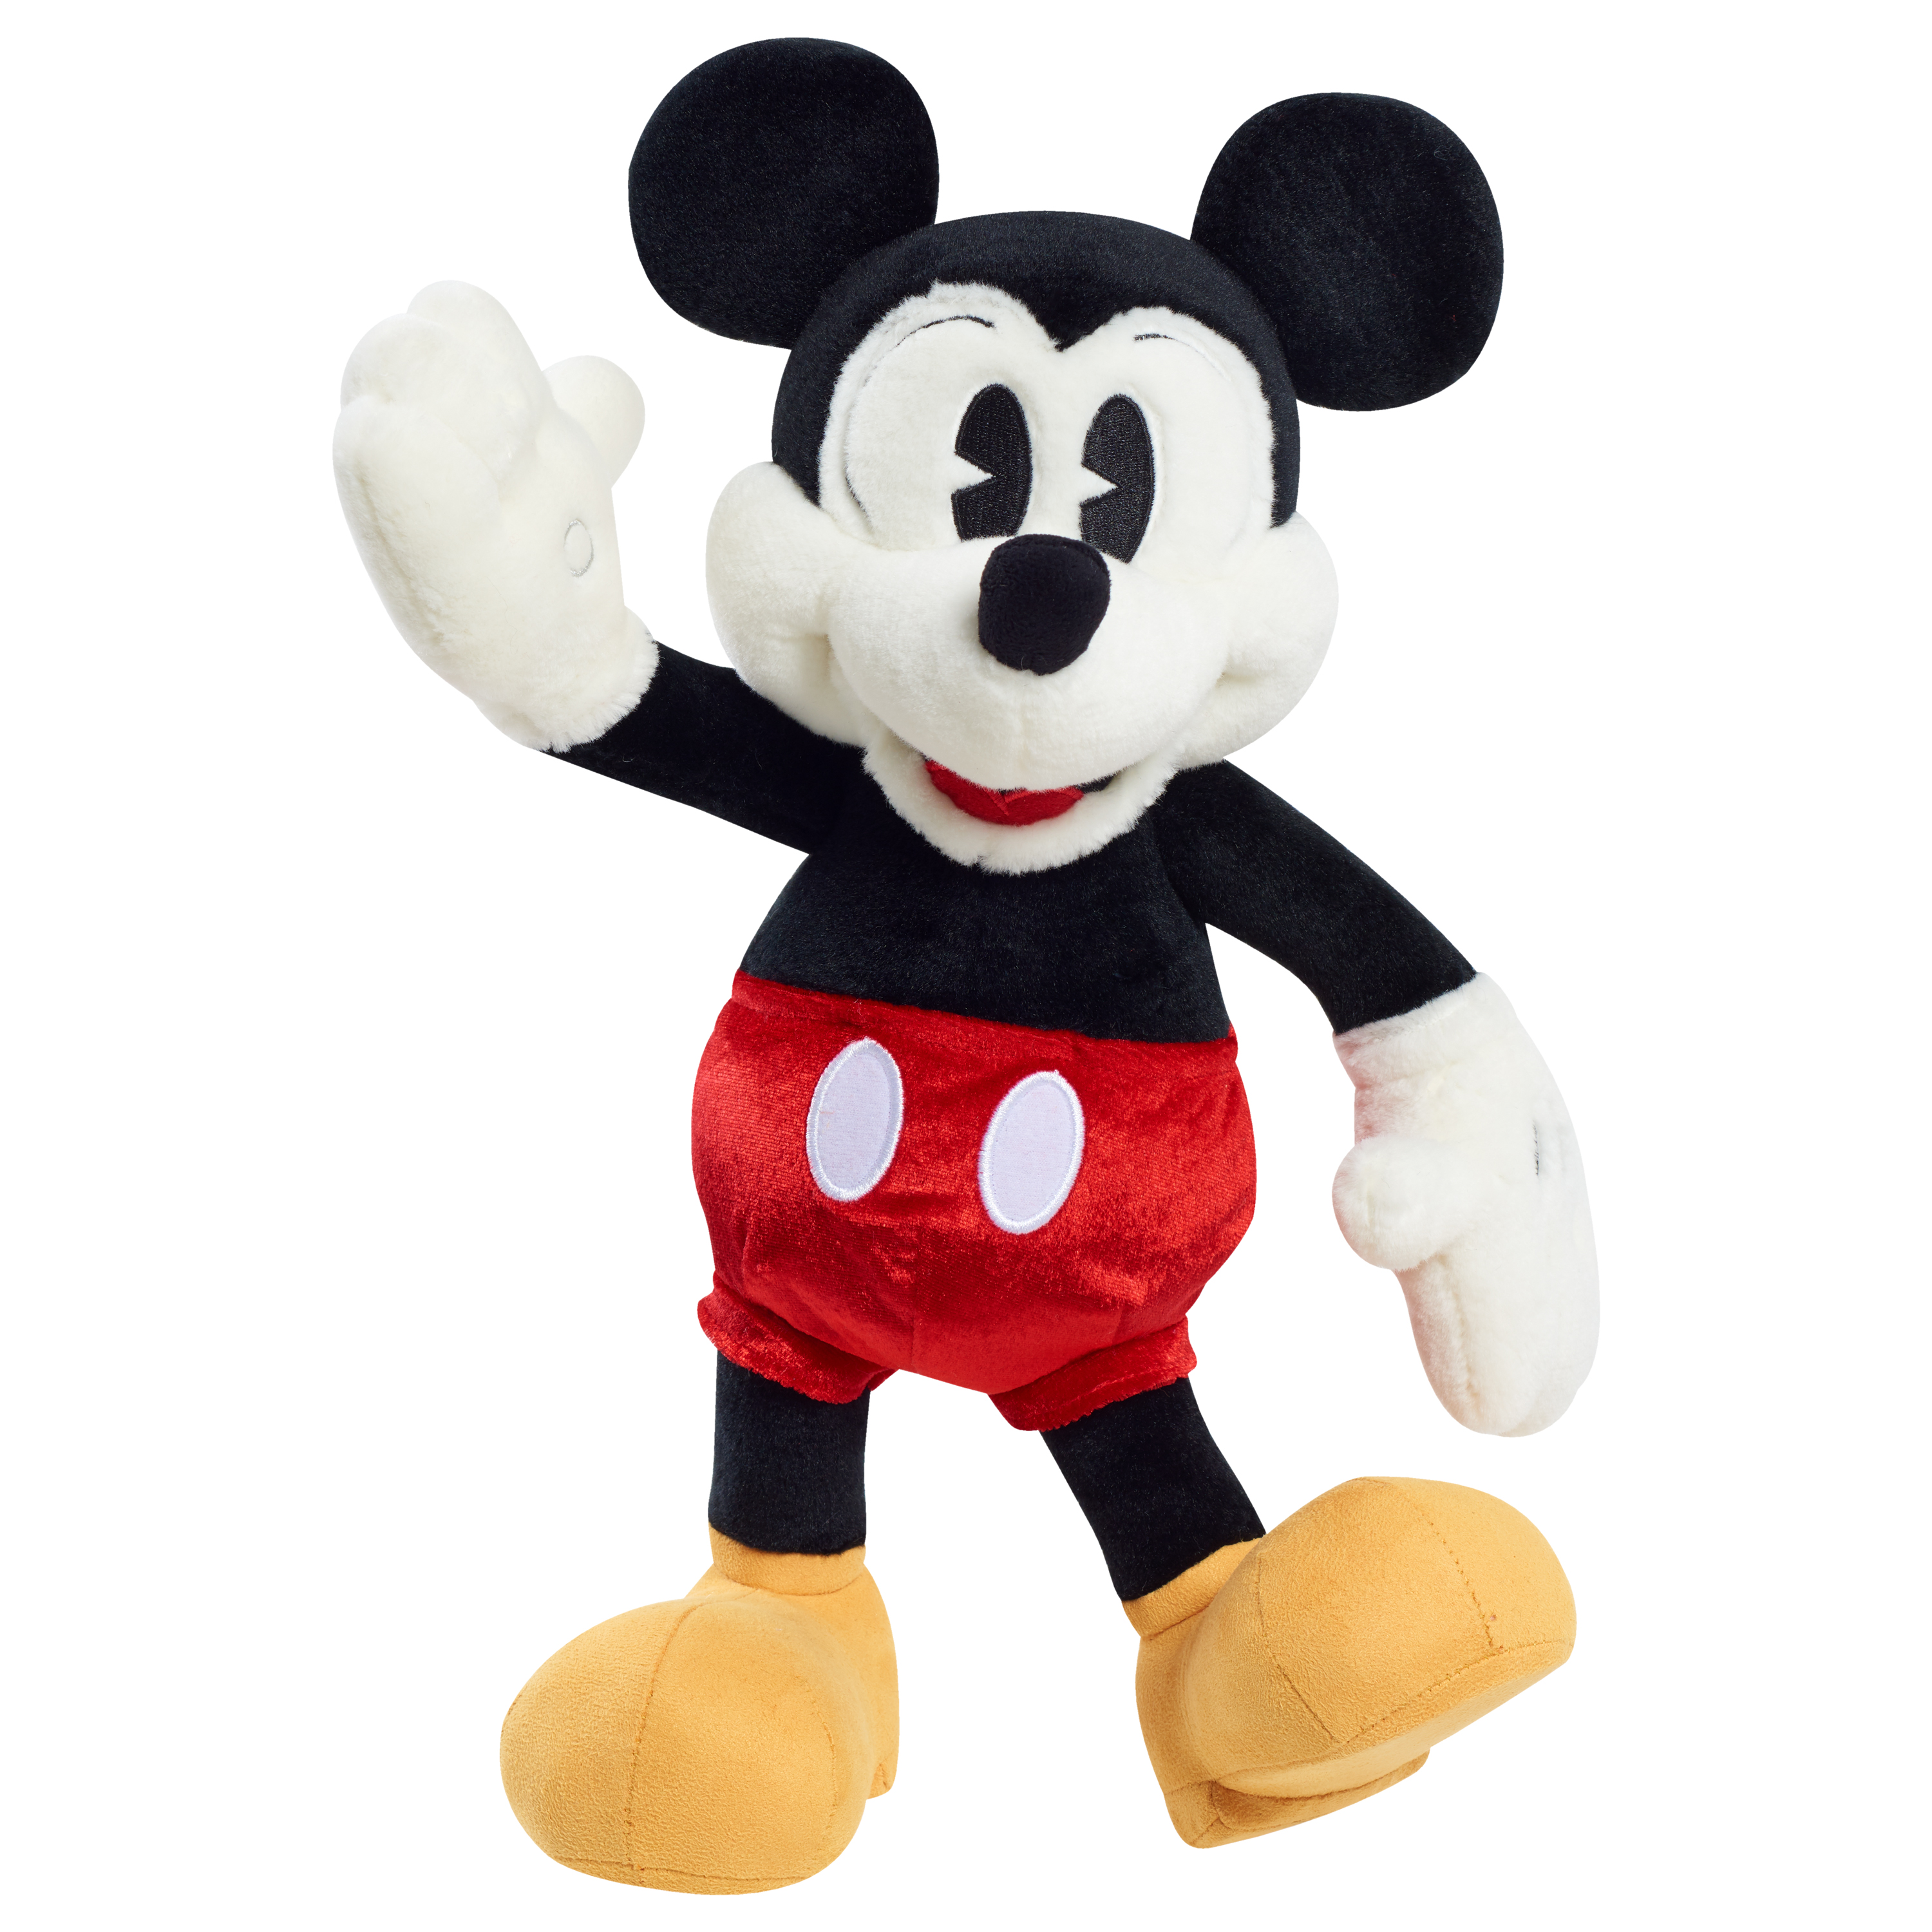 Mickey Mouse 90th Anniversary Special Edition Poseable Mickey Mouse Plush